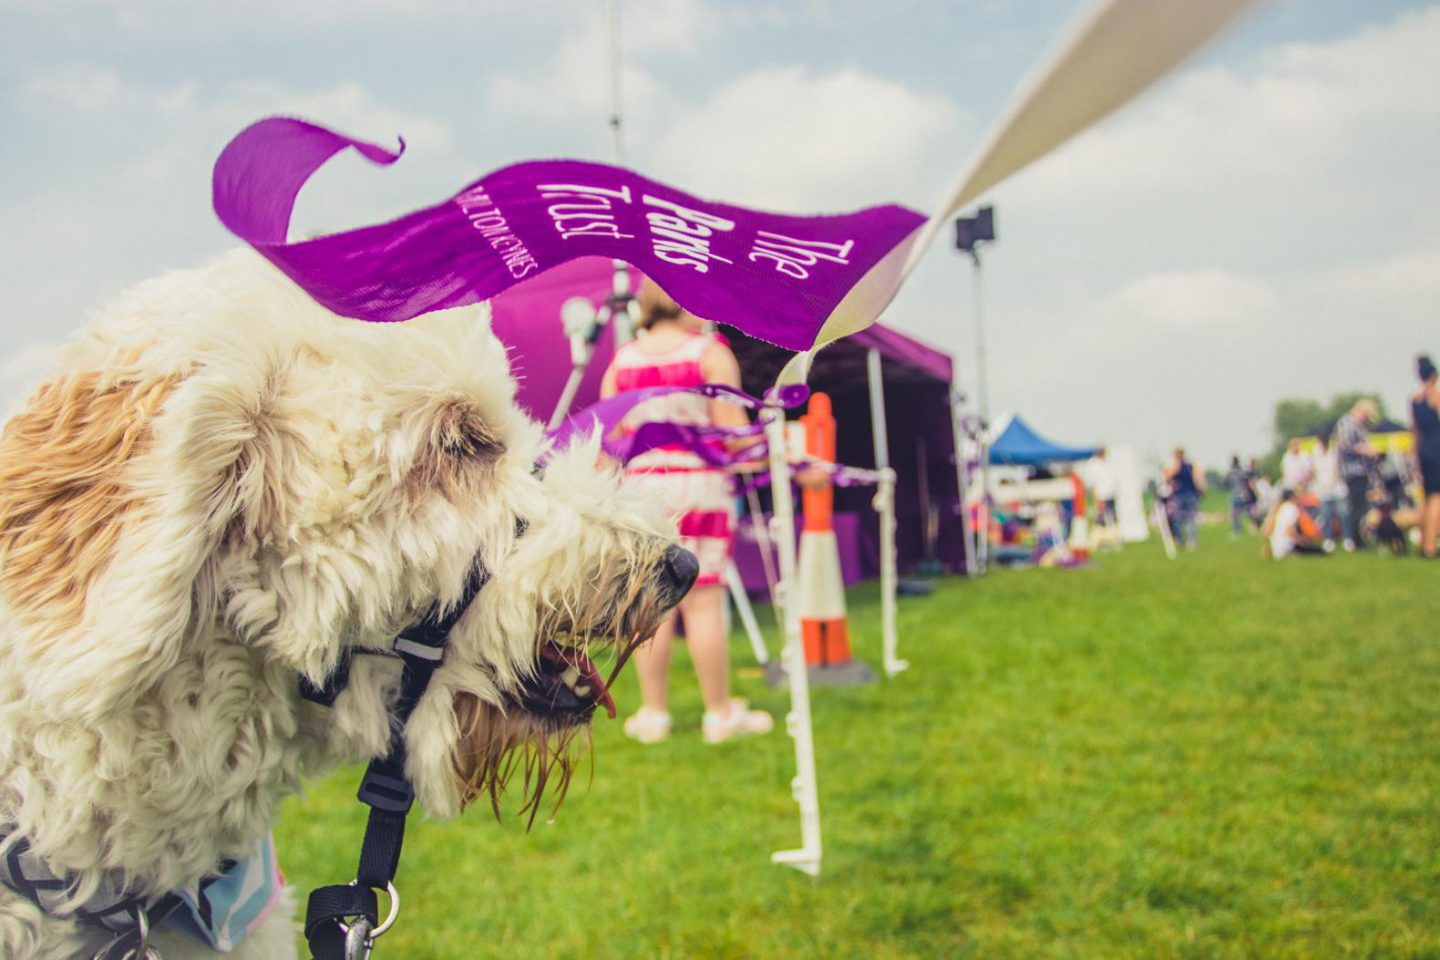 Doggie's day out: The Parks Trust Milton Keynes Big Doggie Do 2018